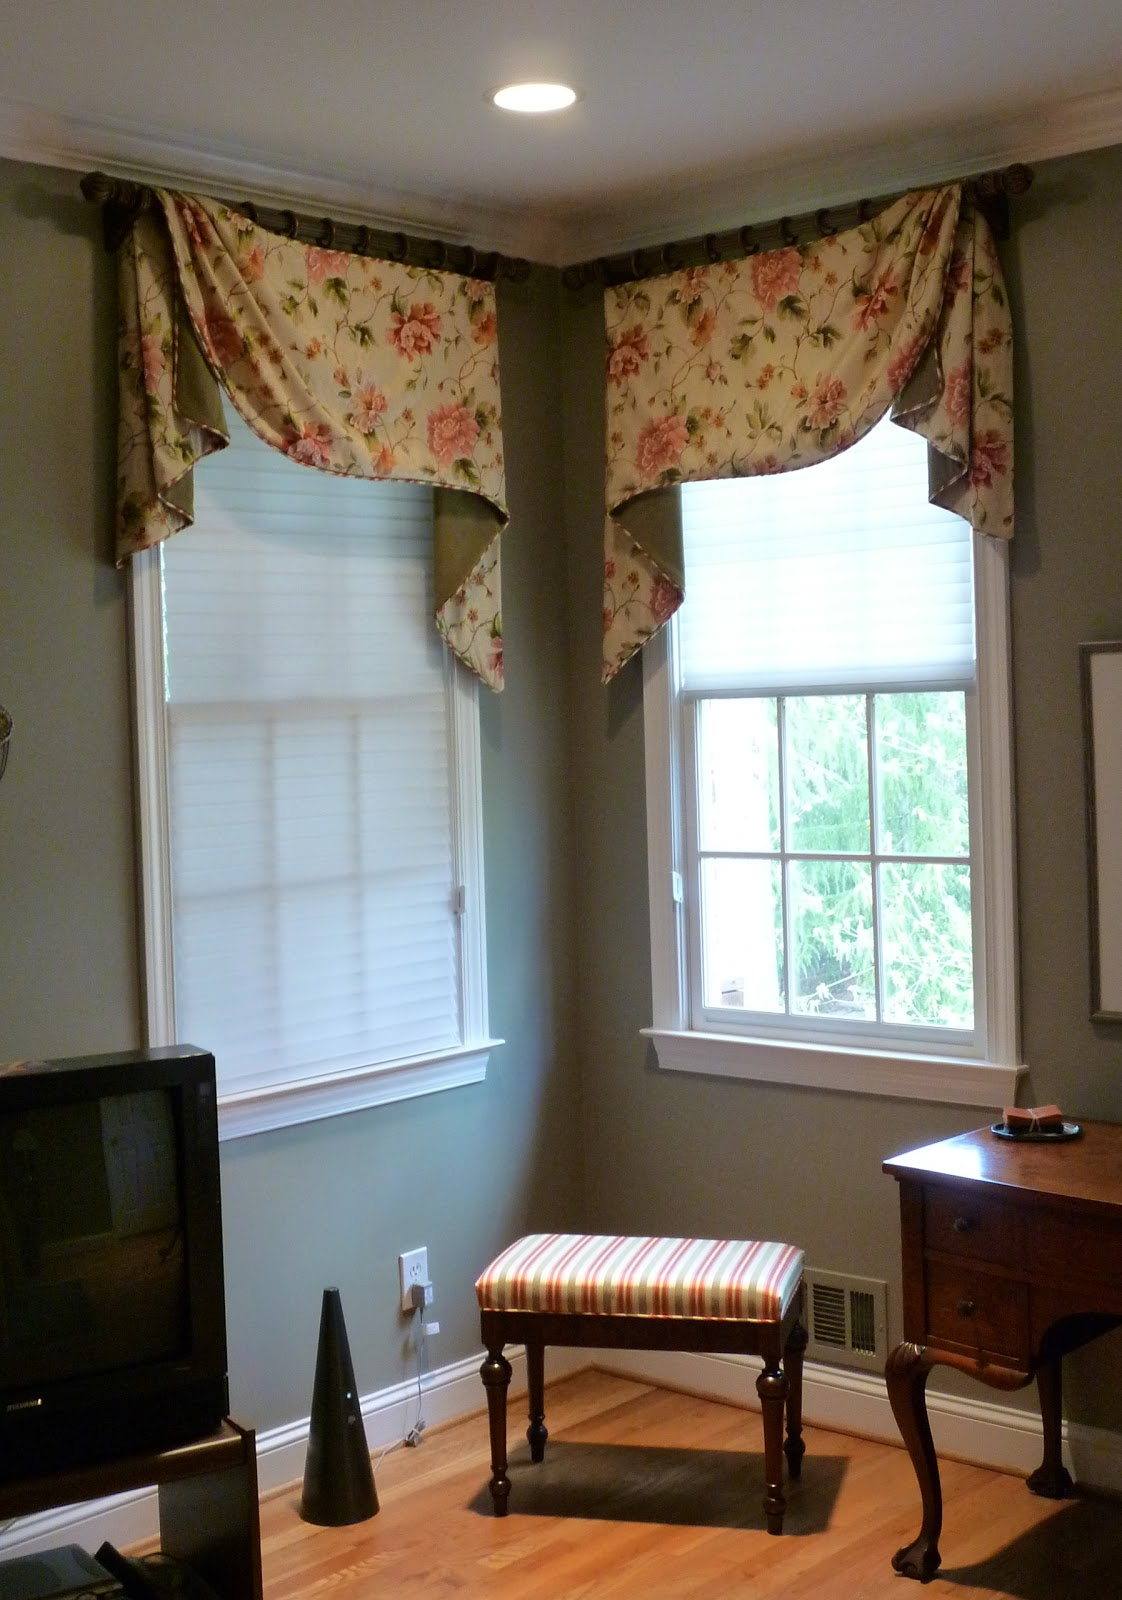 Youngblood interiors corner window treatments for the Drapery treatments ideas